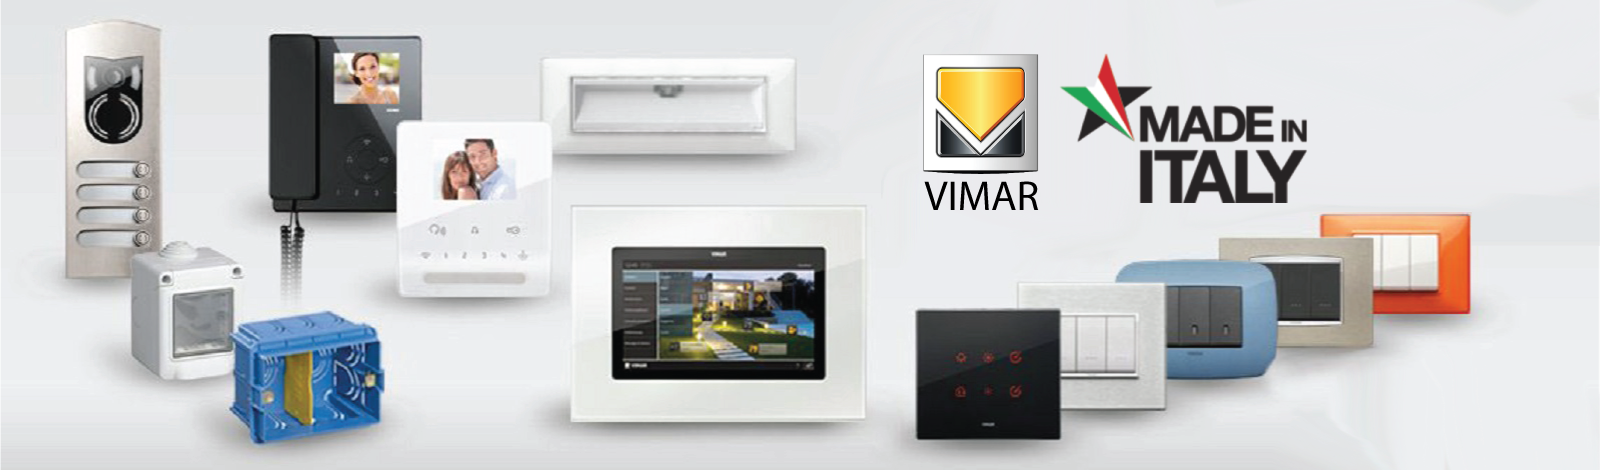 vimar-made-in-italy